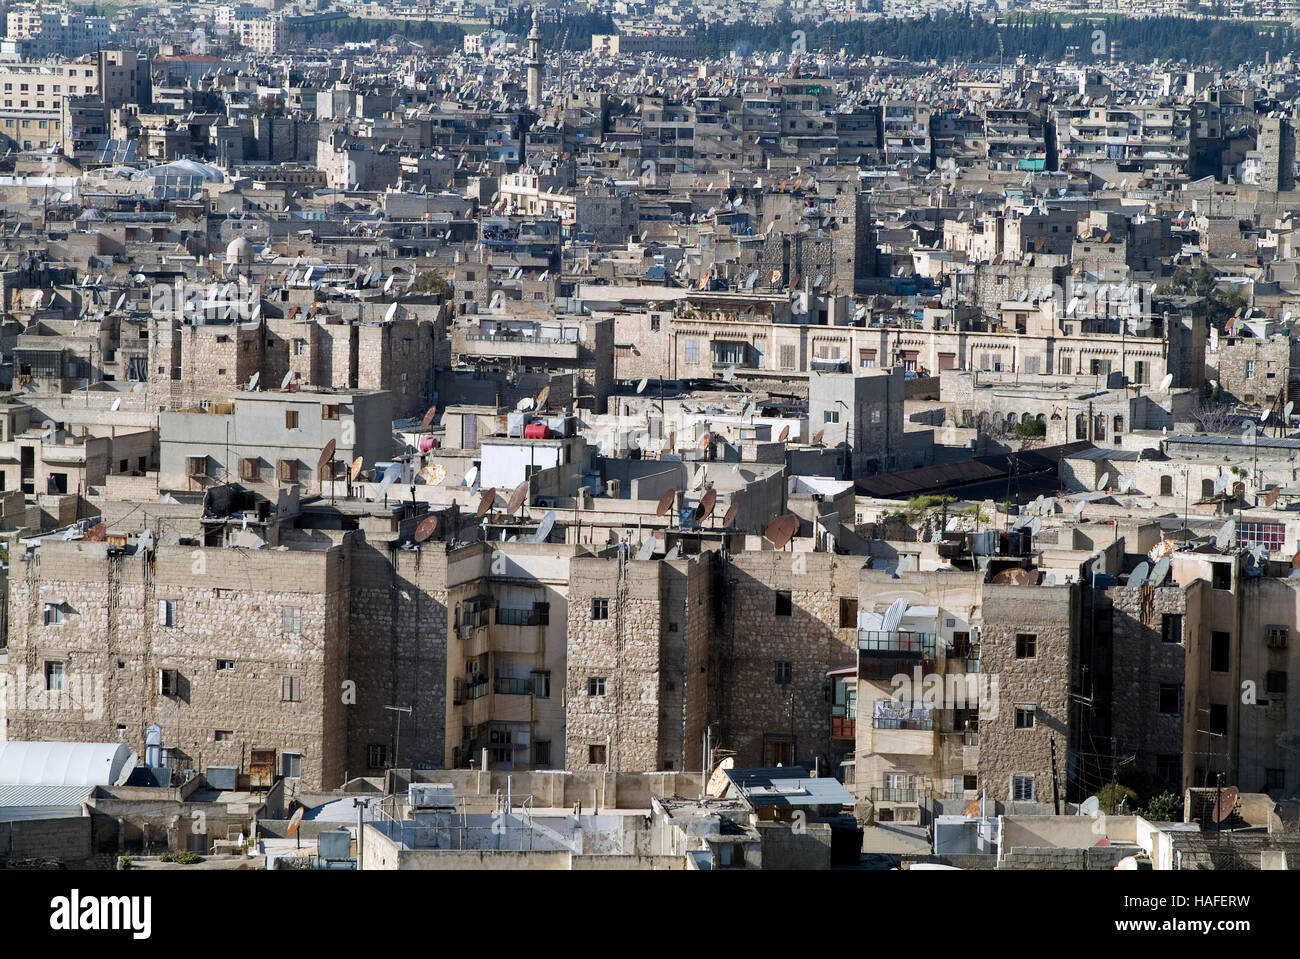 The view over Aleppo from the citadel, a large medieval fortified palace, before the civil war. - Stock Image